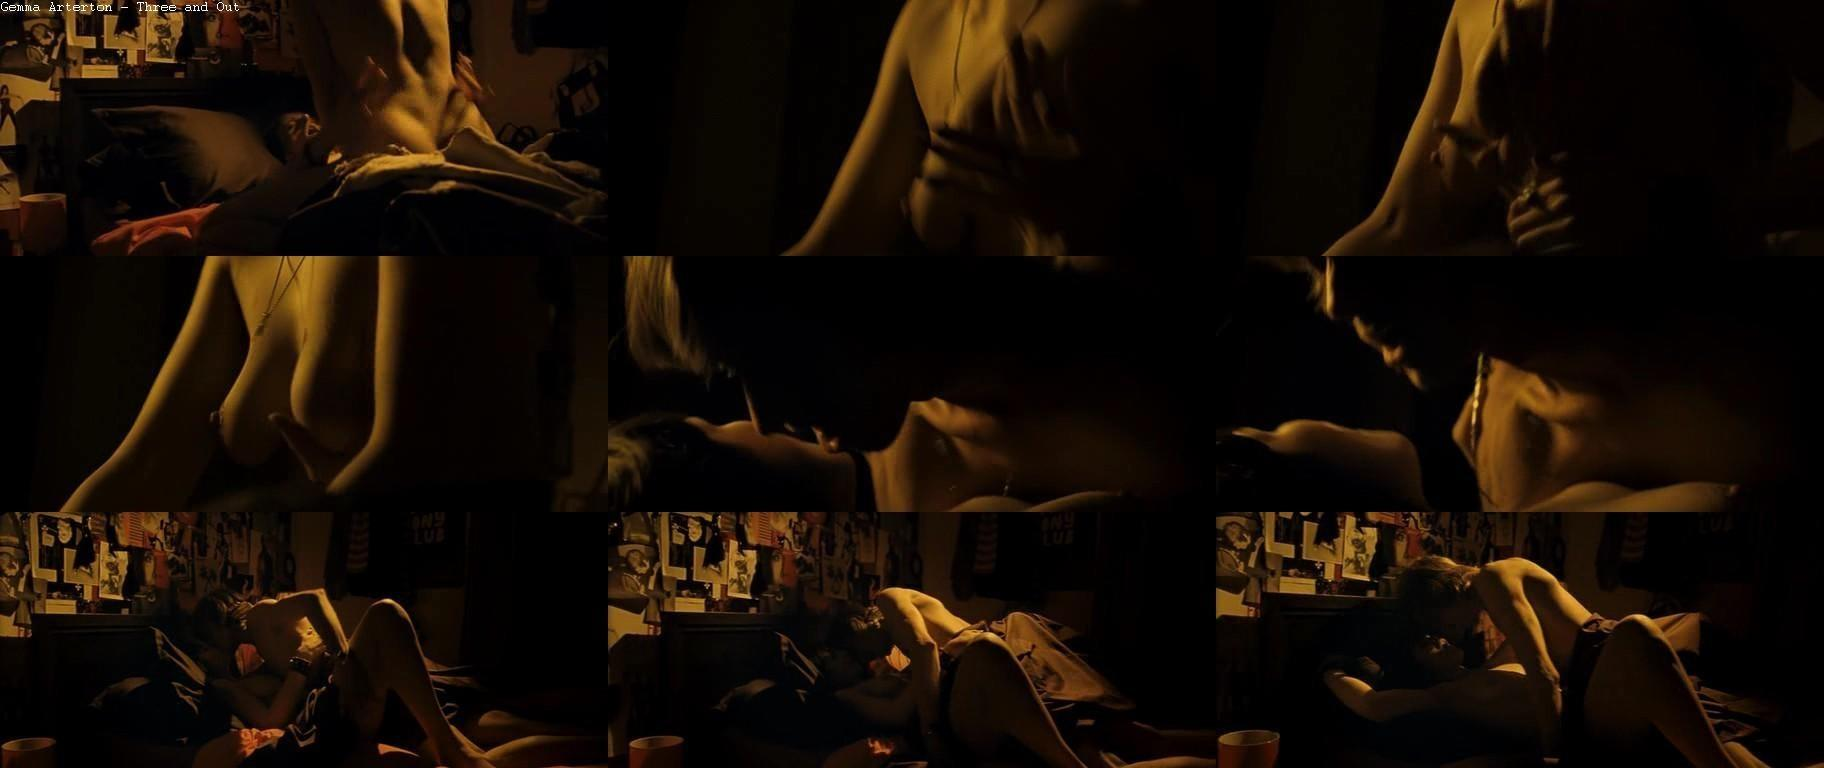 gemma arterton sex scene three and out